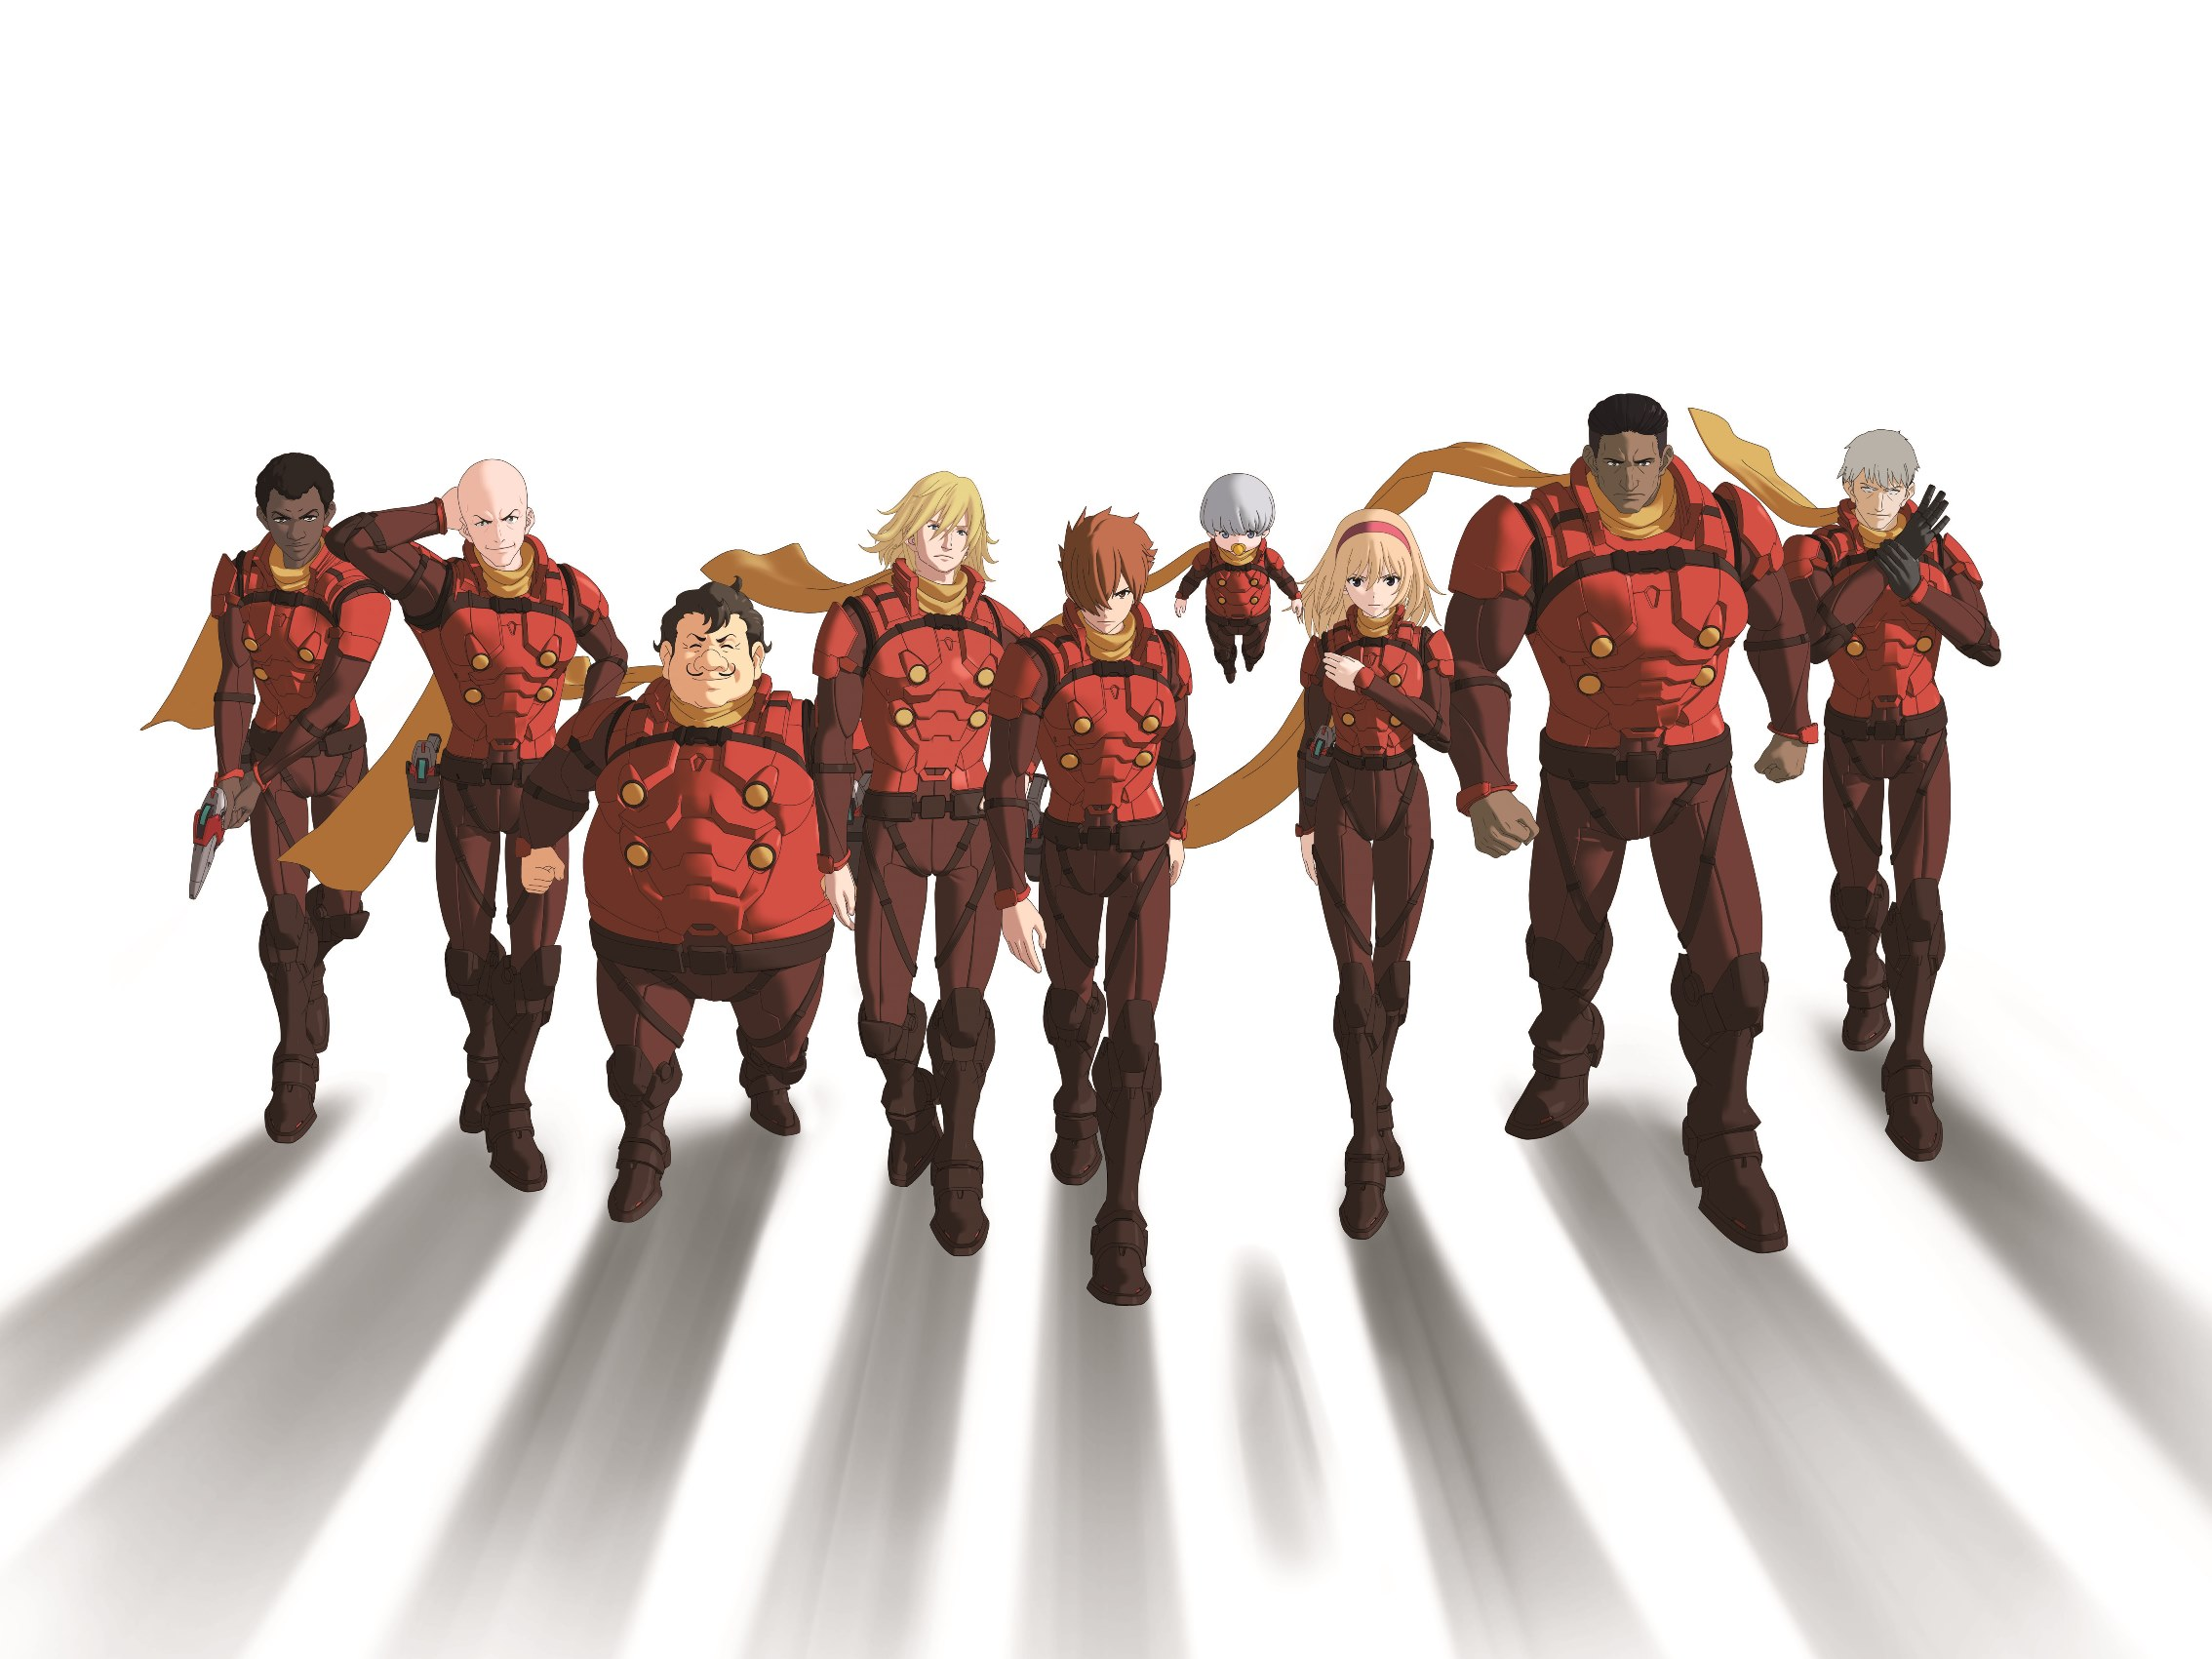 『CYBORG009 CALL OF JUSTICE』劇場鑑賞券プレゼントキャンペーン!!